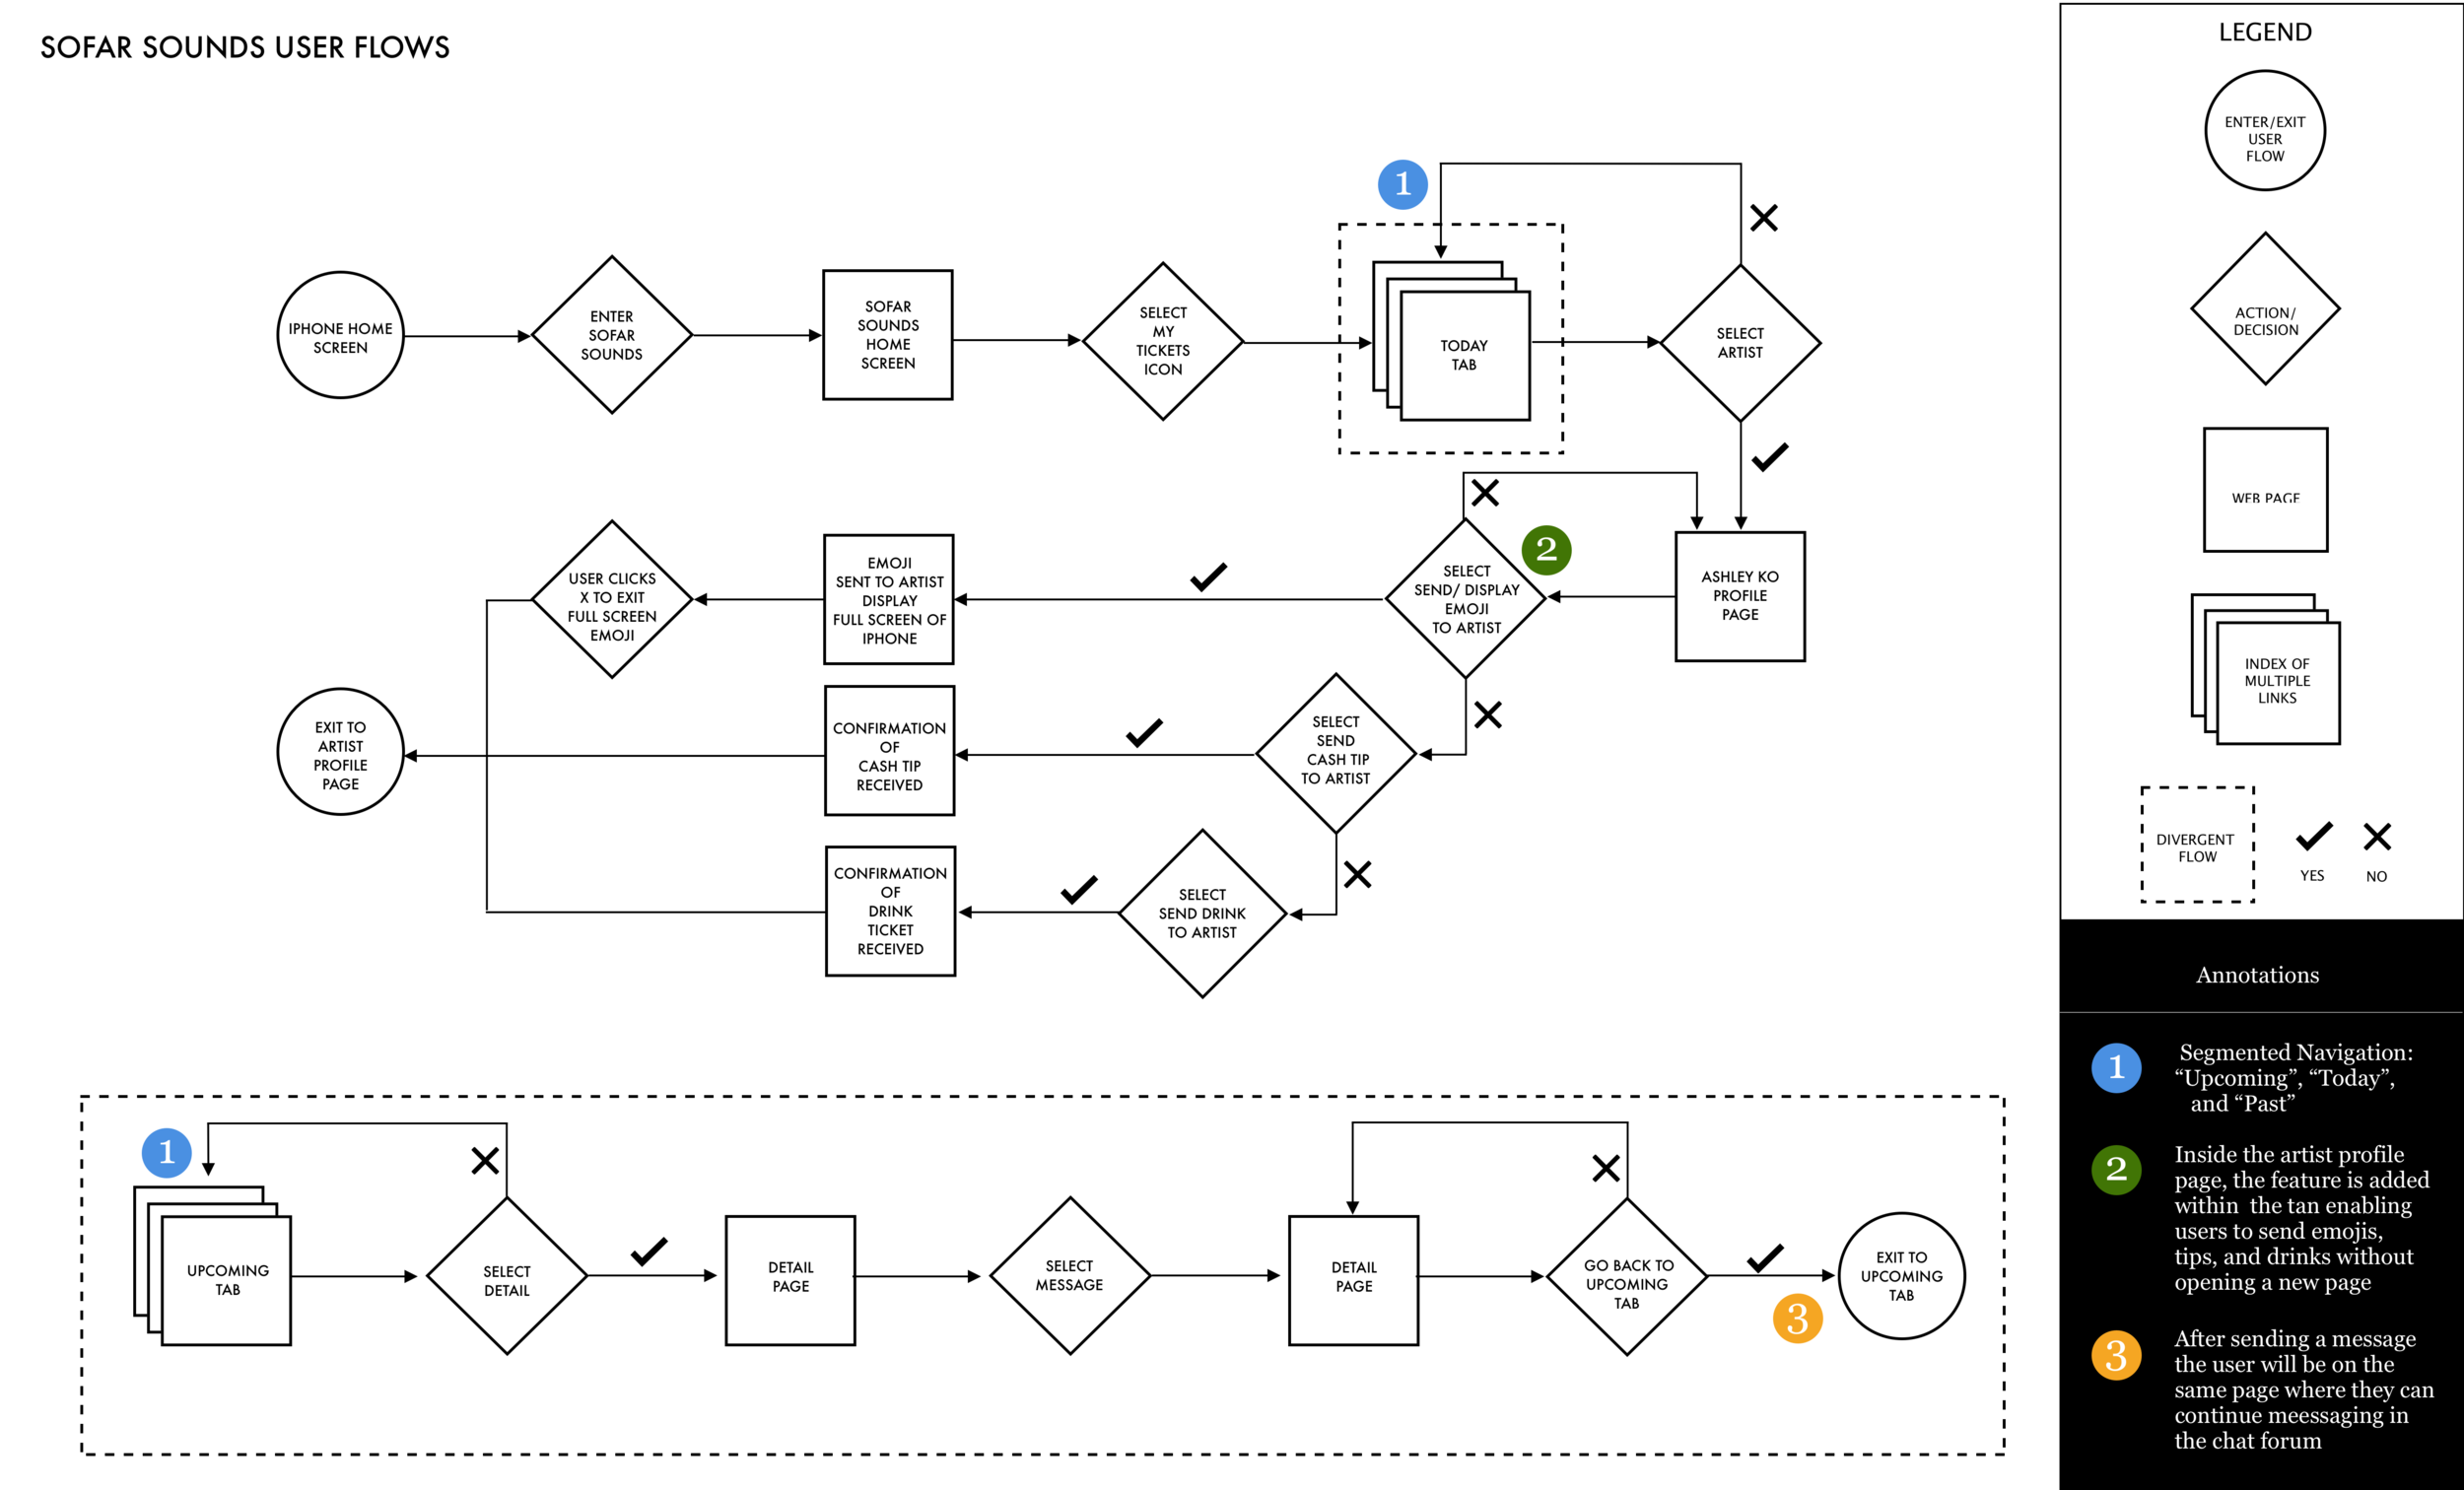 sofar user flow.png